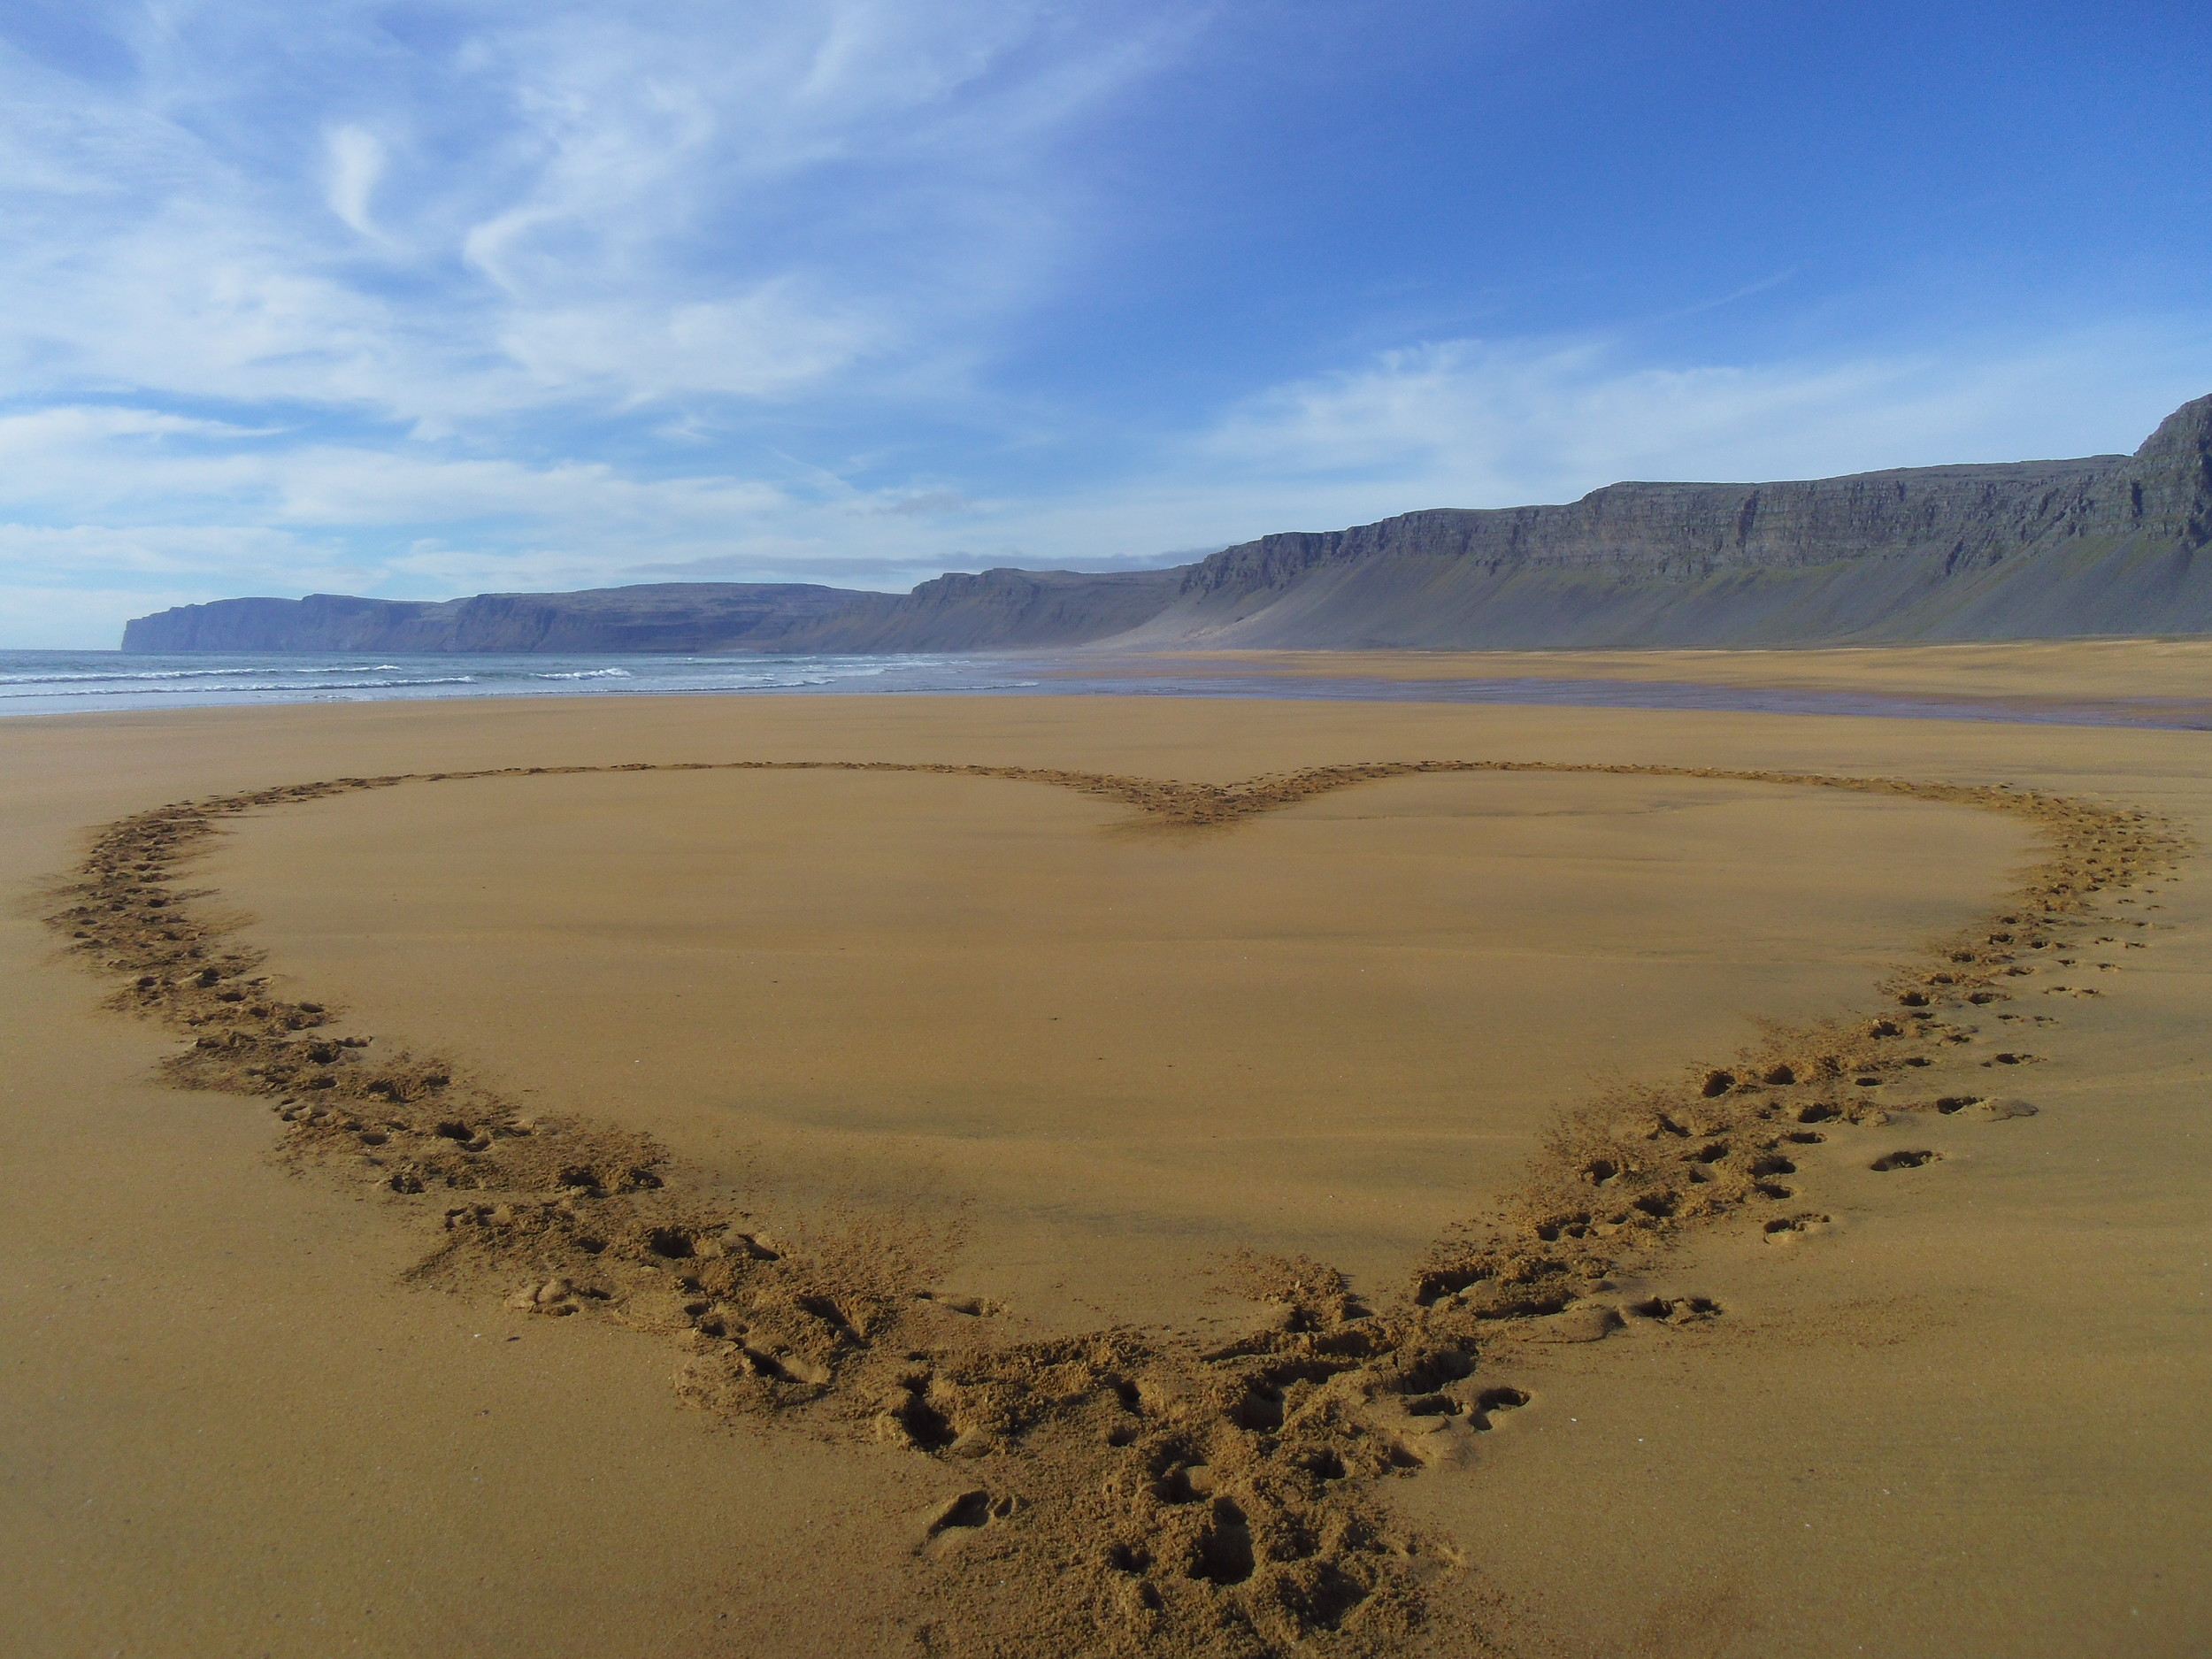 Heart made with feet, Rauðasandur, Westfjords. 10/10 for cheesiness. Photo by Henry Fletcher (who else was there to take it?!)